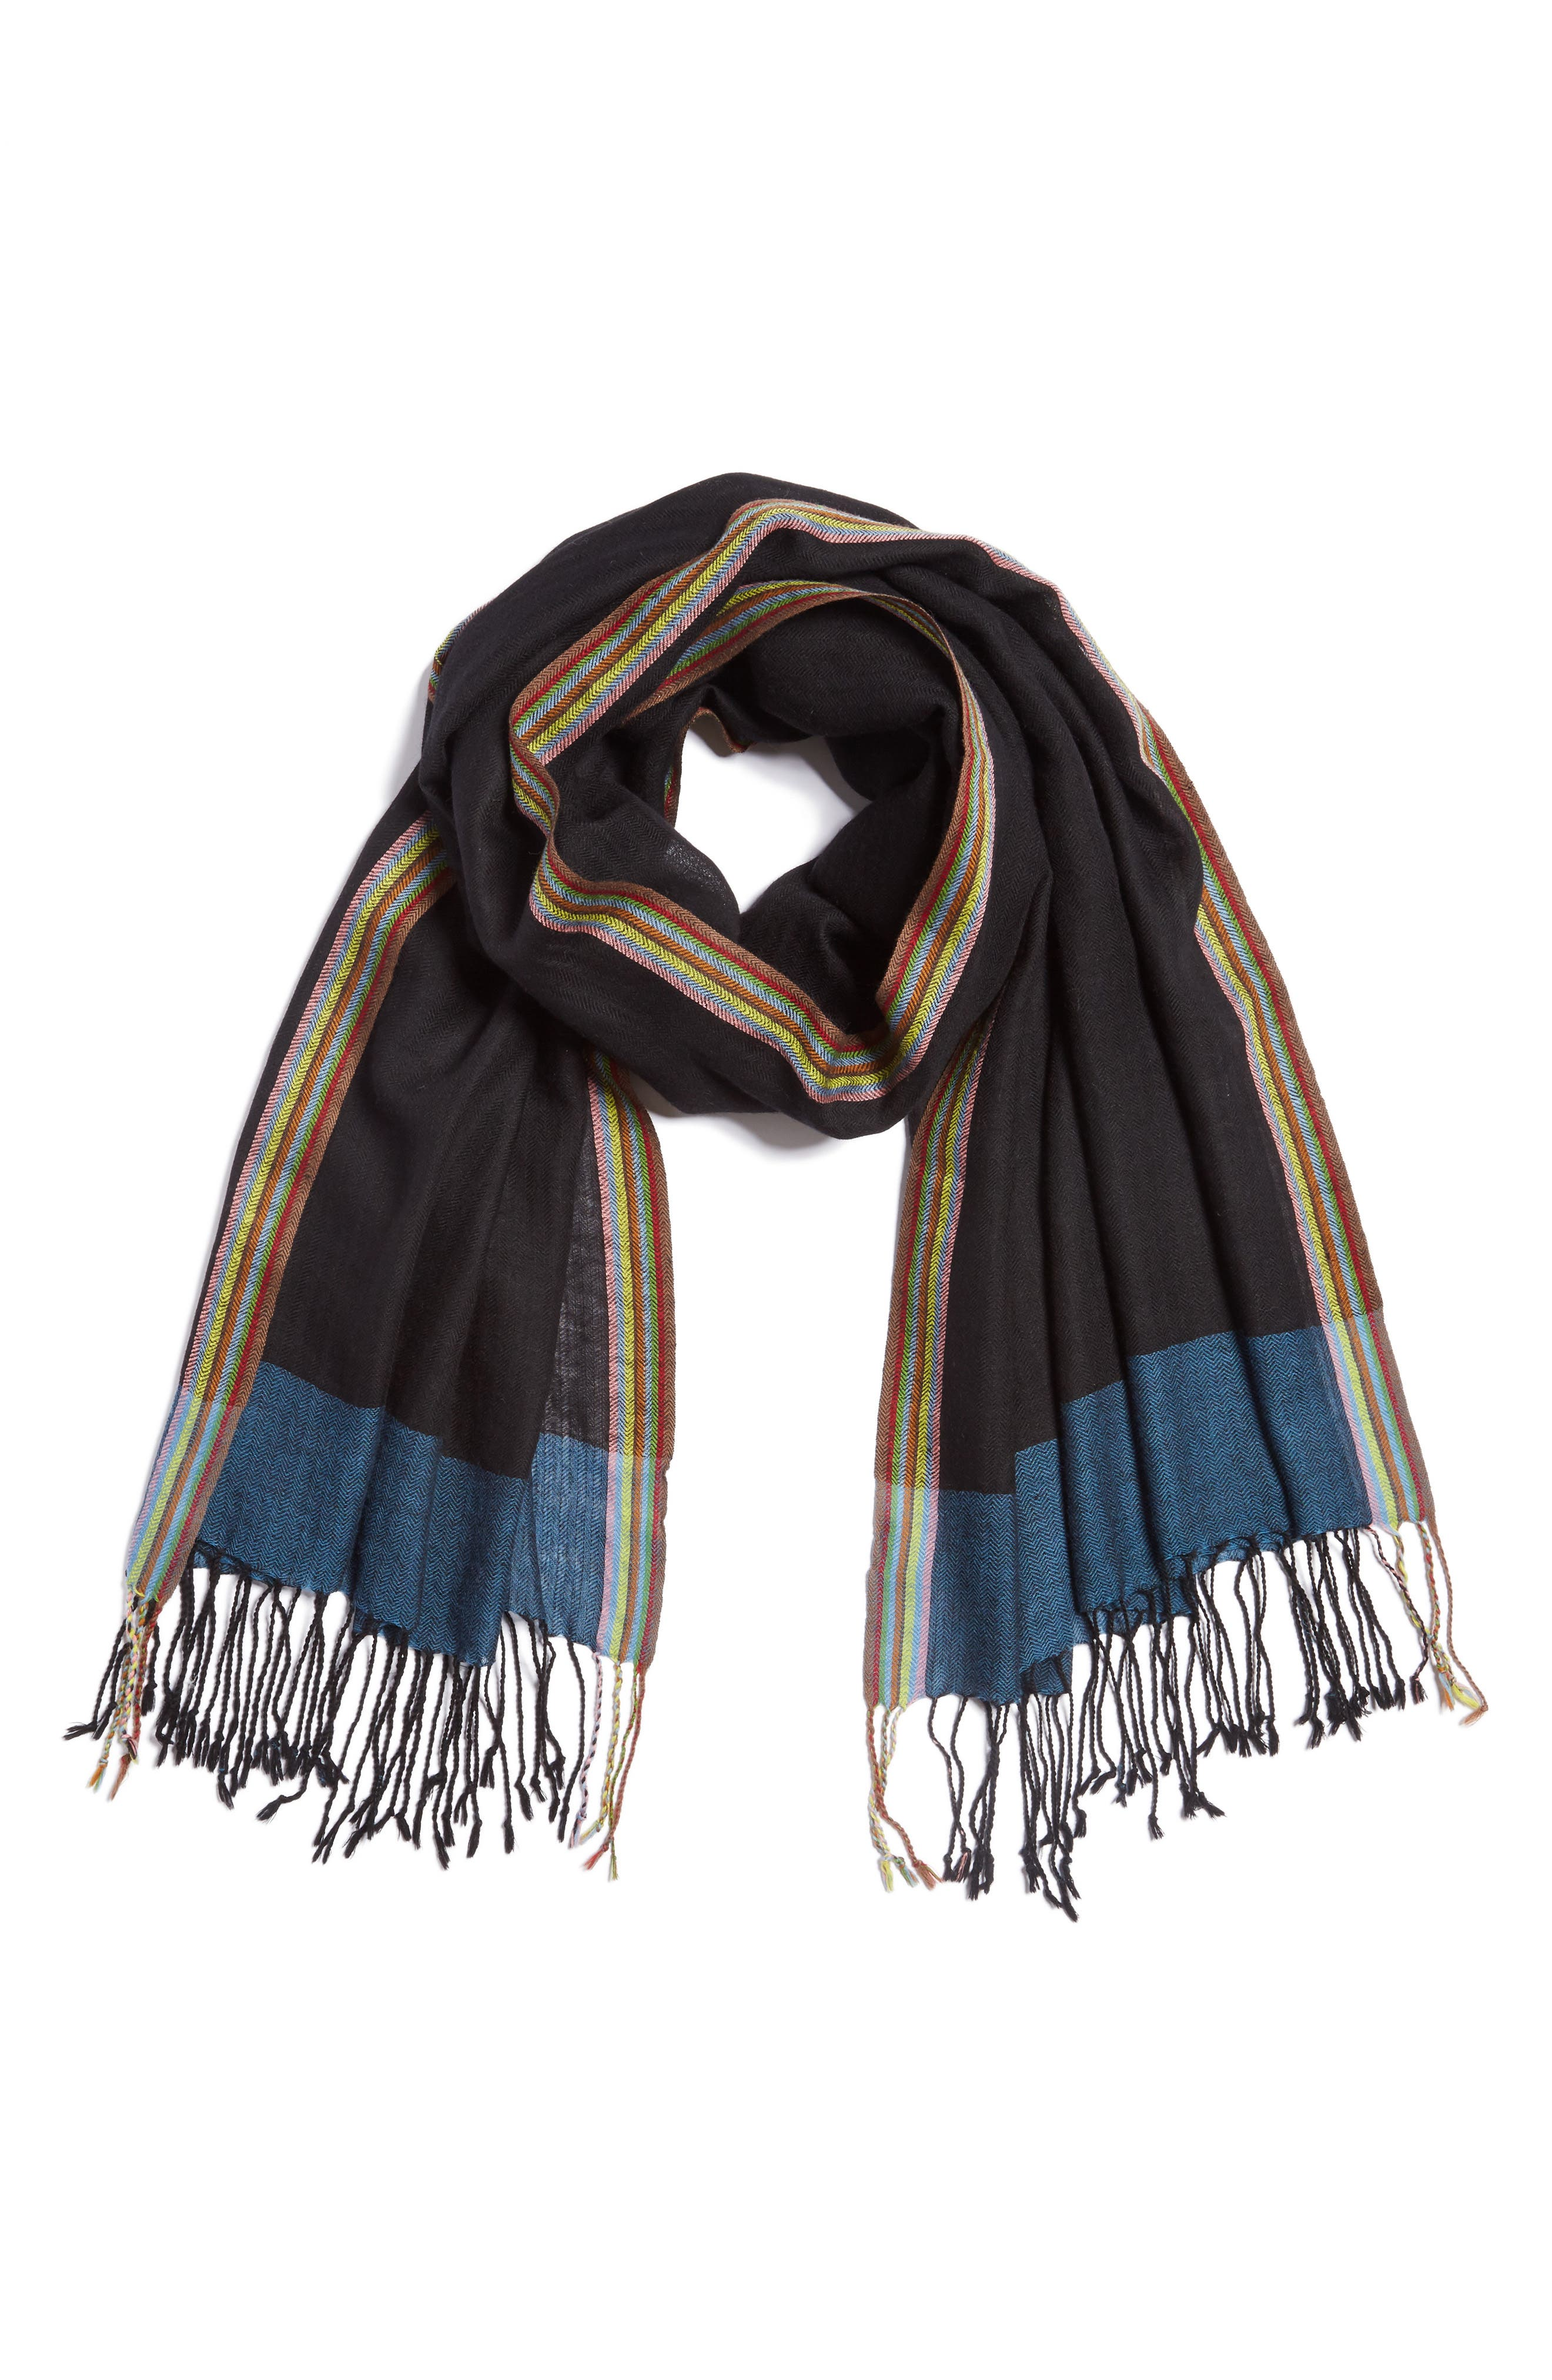 Paul Smith Stripe Herringbone Wool Scarf